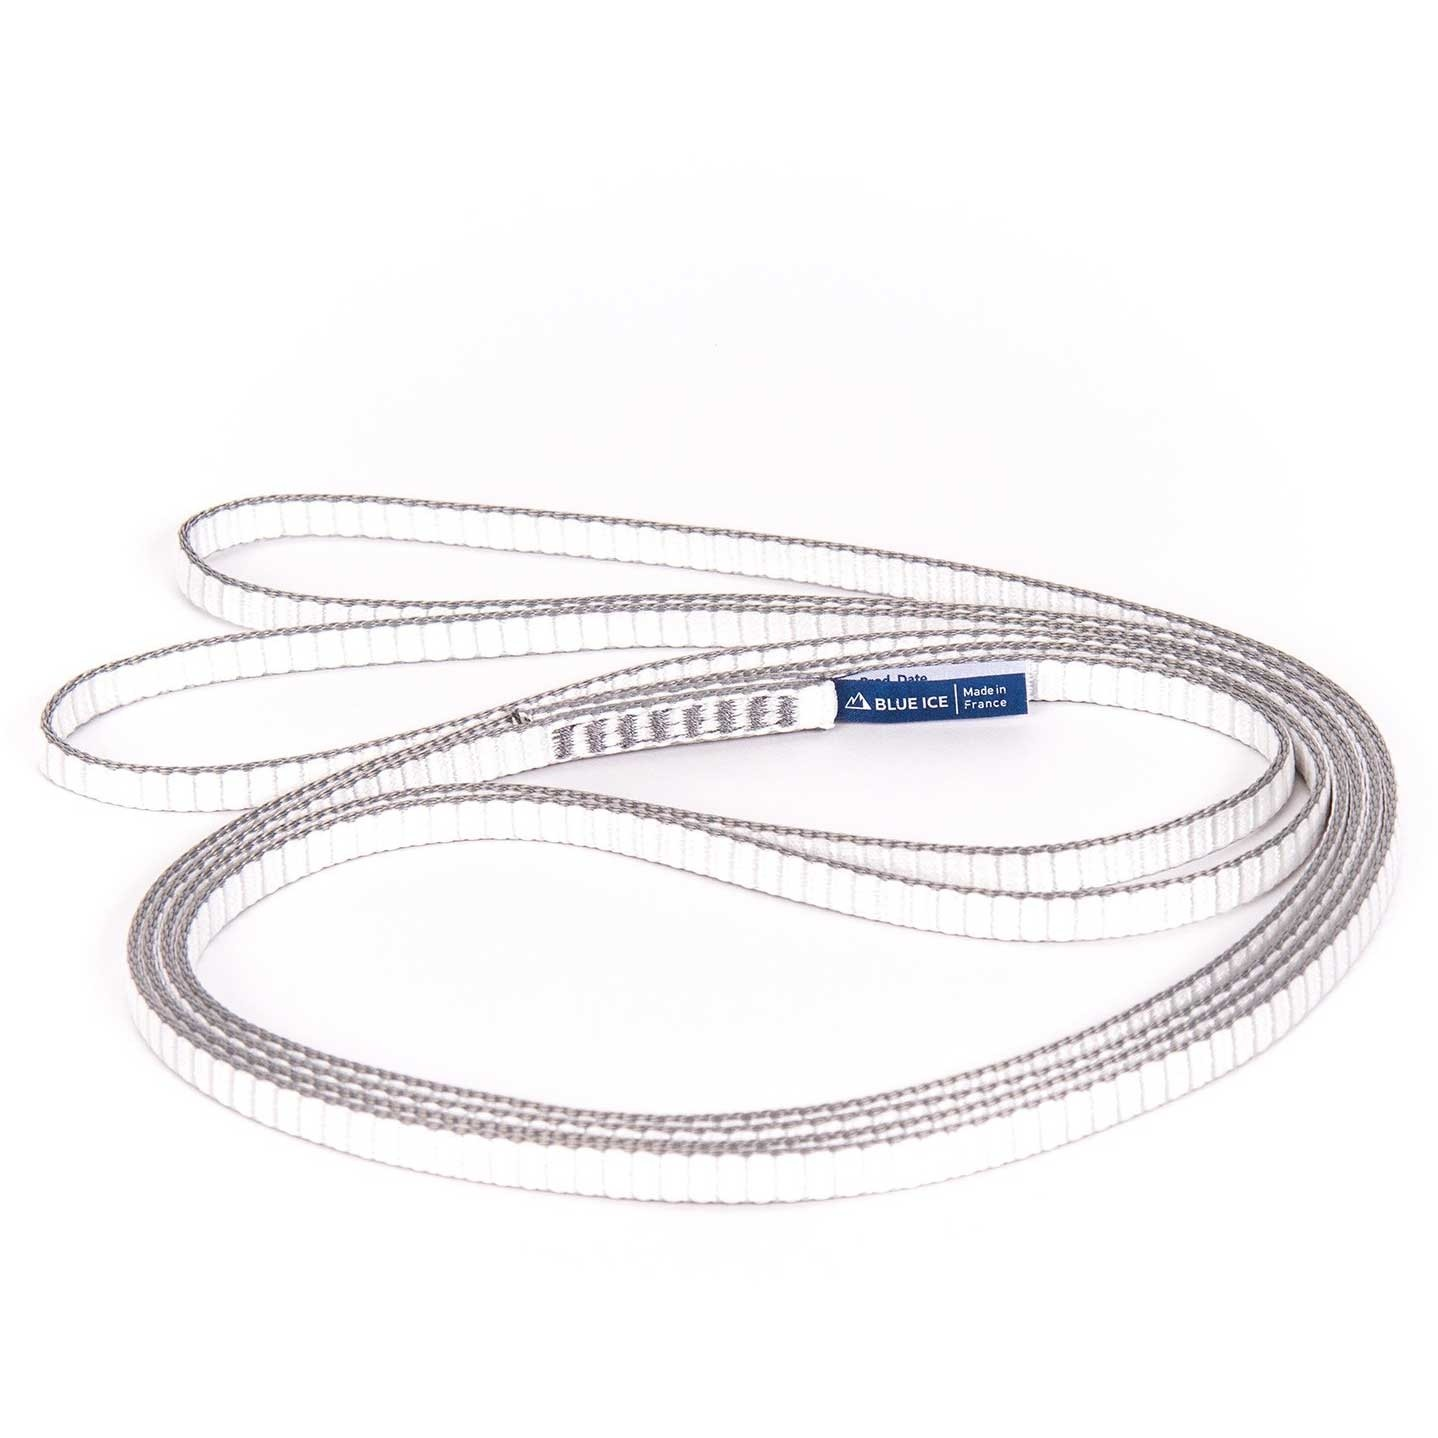 Blue Ice Mission Dyneema Sling - 180 cm